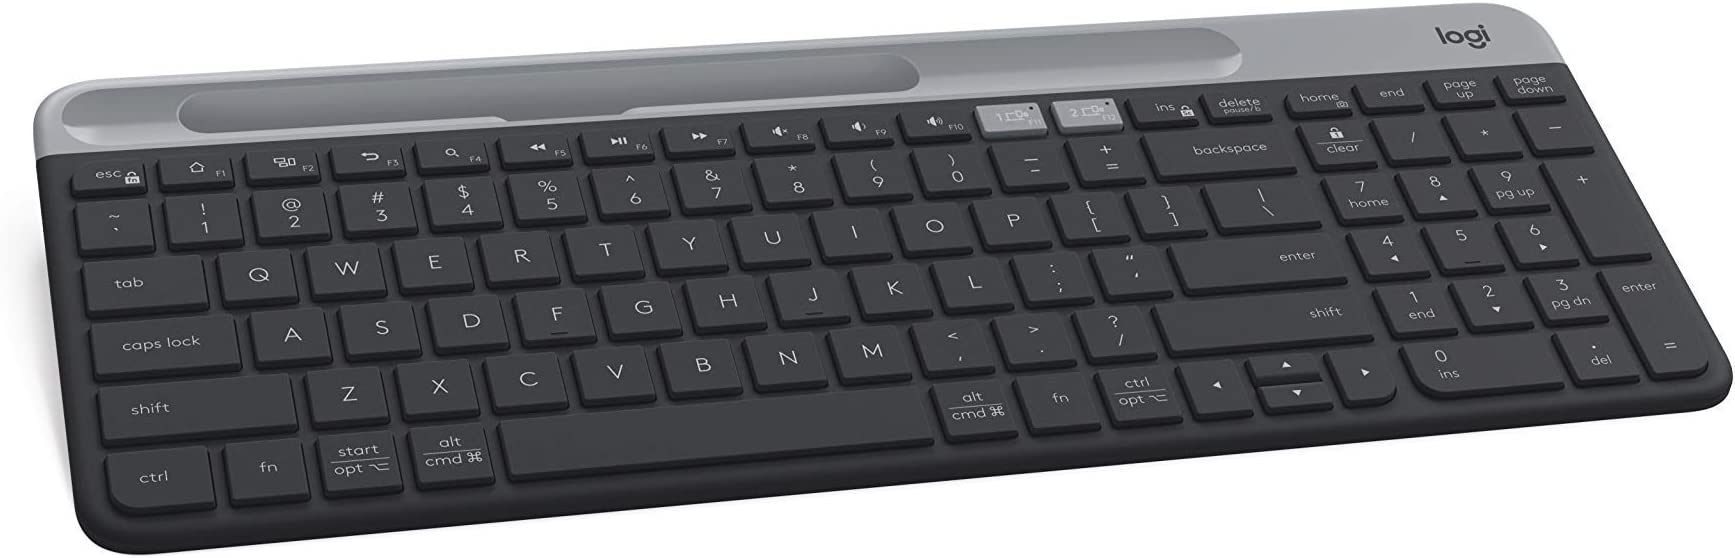 Logitech K580 Slim Multi-Device Wireless Keyboard for Chrome OS - Bluetooth/USB Receiver, Easy Switch, 24 Month Battery, Desktop, Tablet, Smartphone, Laptop Compatible (Renewed)